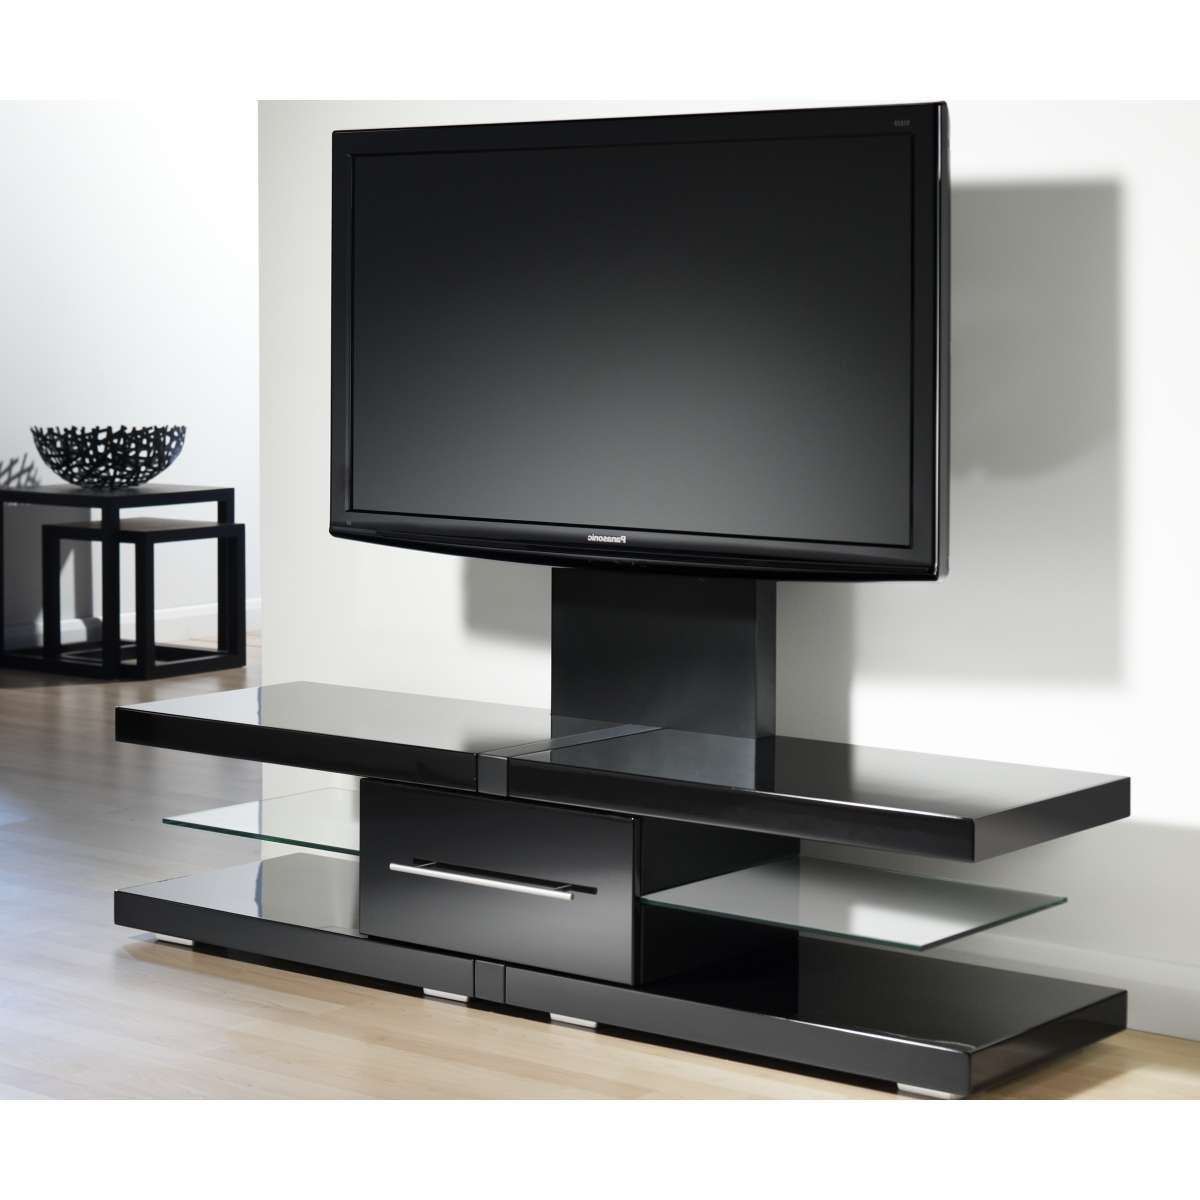 Modern Glossy Black Flat Screen Tv Stand With Mount And Glass Regarding Tv Stands With Mount (View 11 of 15)